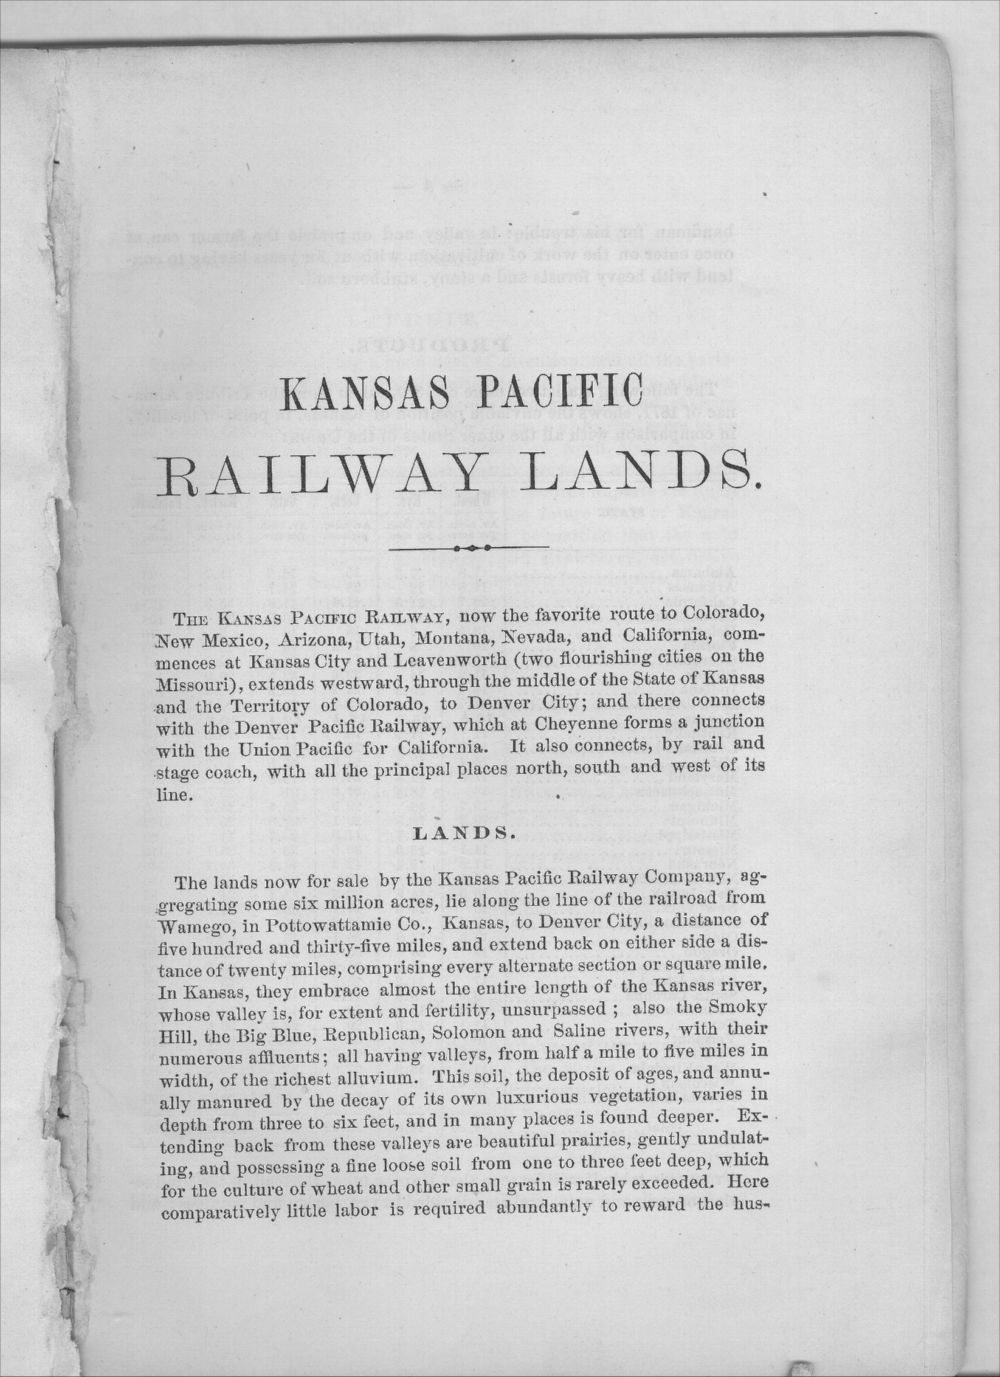 Emigrants' guide to the Kansas Pacific Railway lands - 3